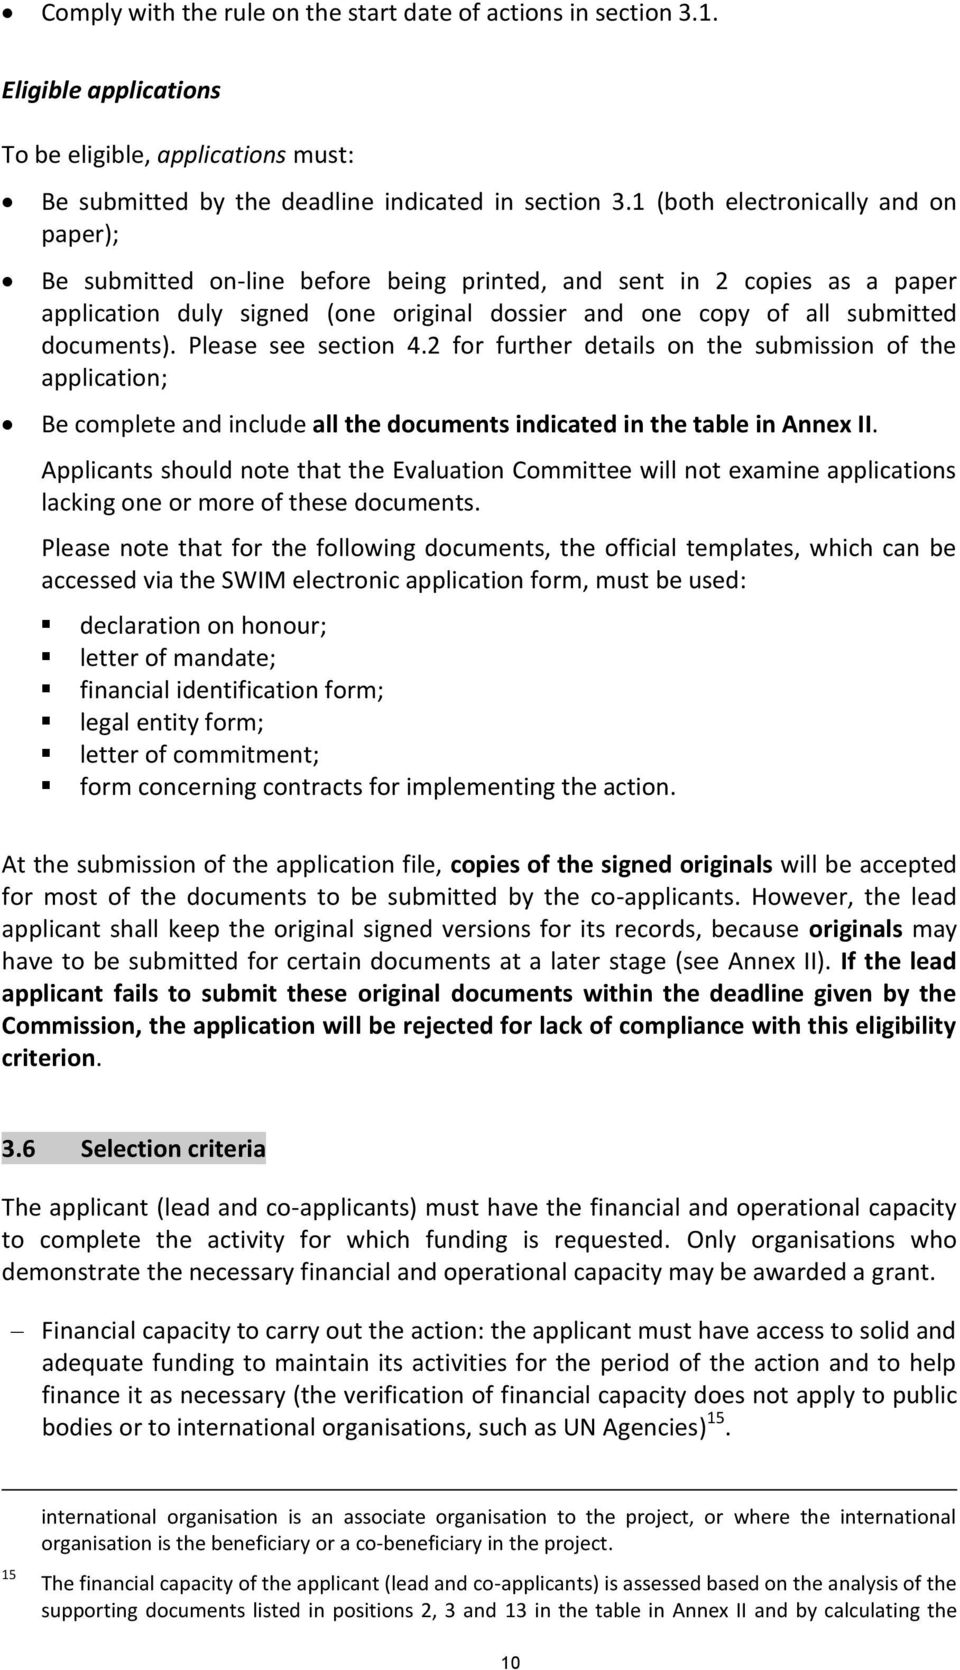 Please see section 4.2 for further details on the submission of the application; Be complete and include all the documents indicated in the table in Annex II.